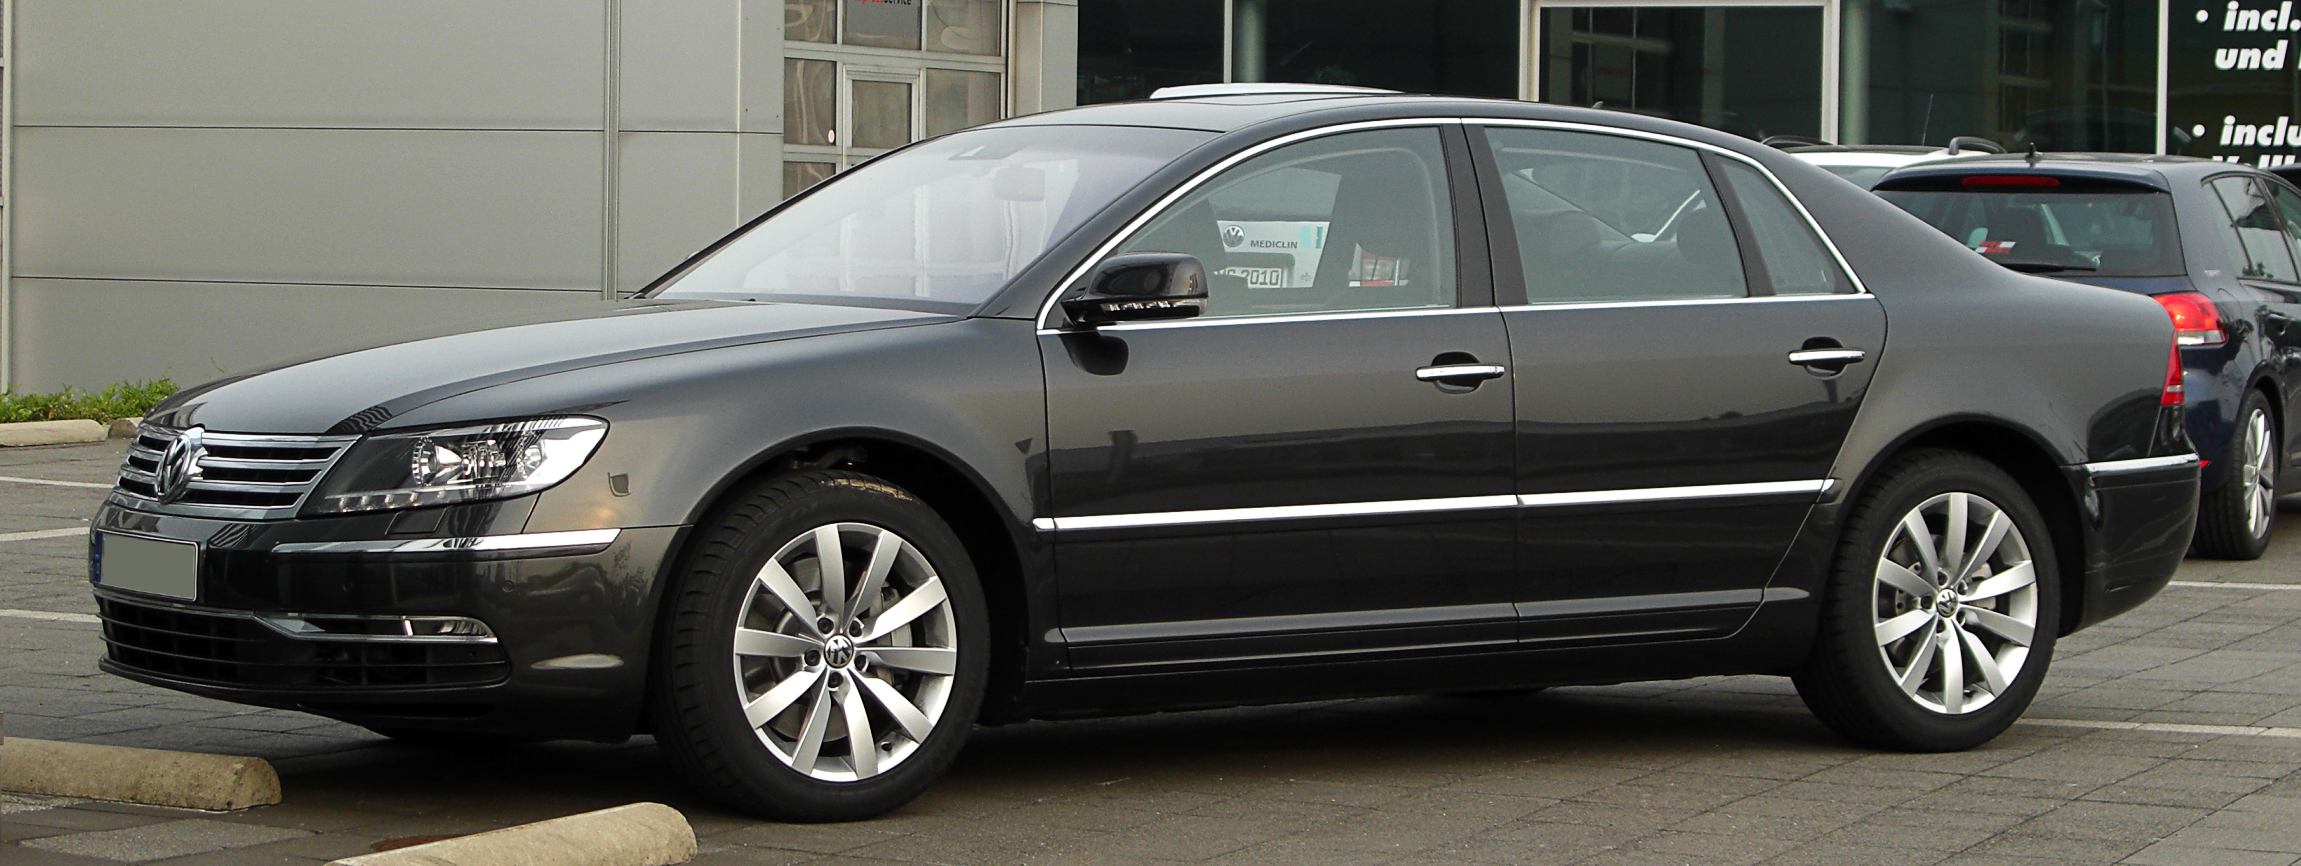 Volkswagen Phaeton 3.0 2011 photo - 6